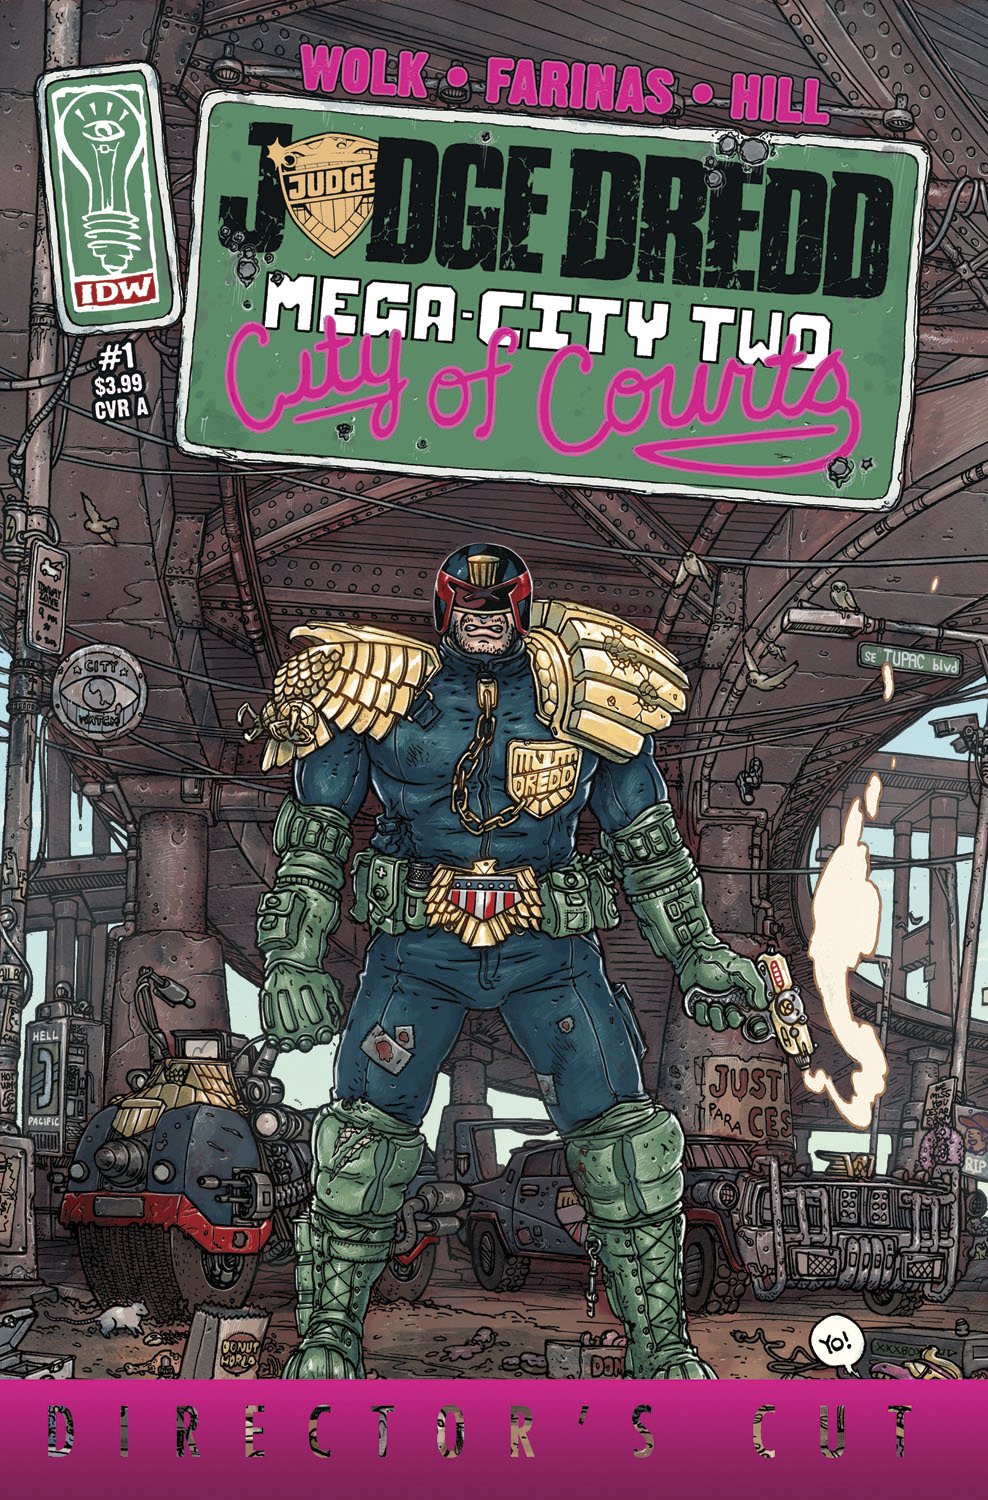 JUDGE DREDD MEGA CITY TWO DIRECTORS CUT #1